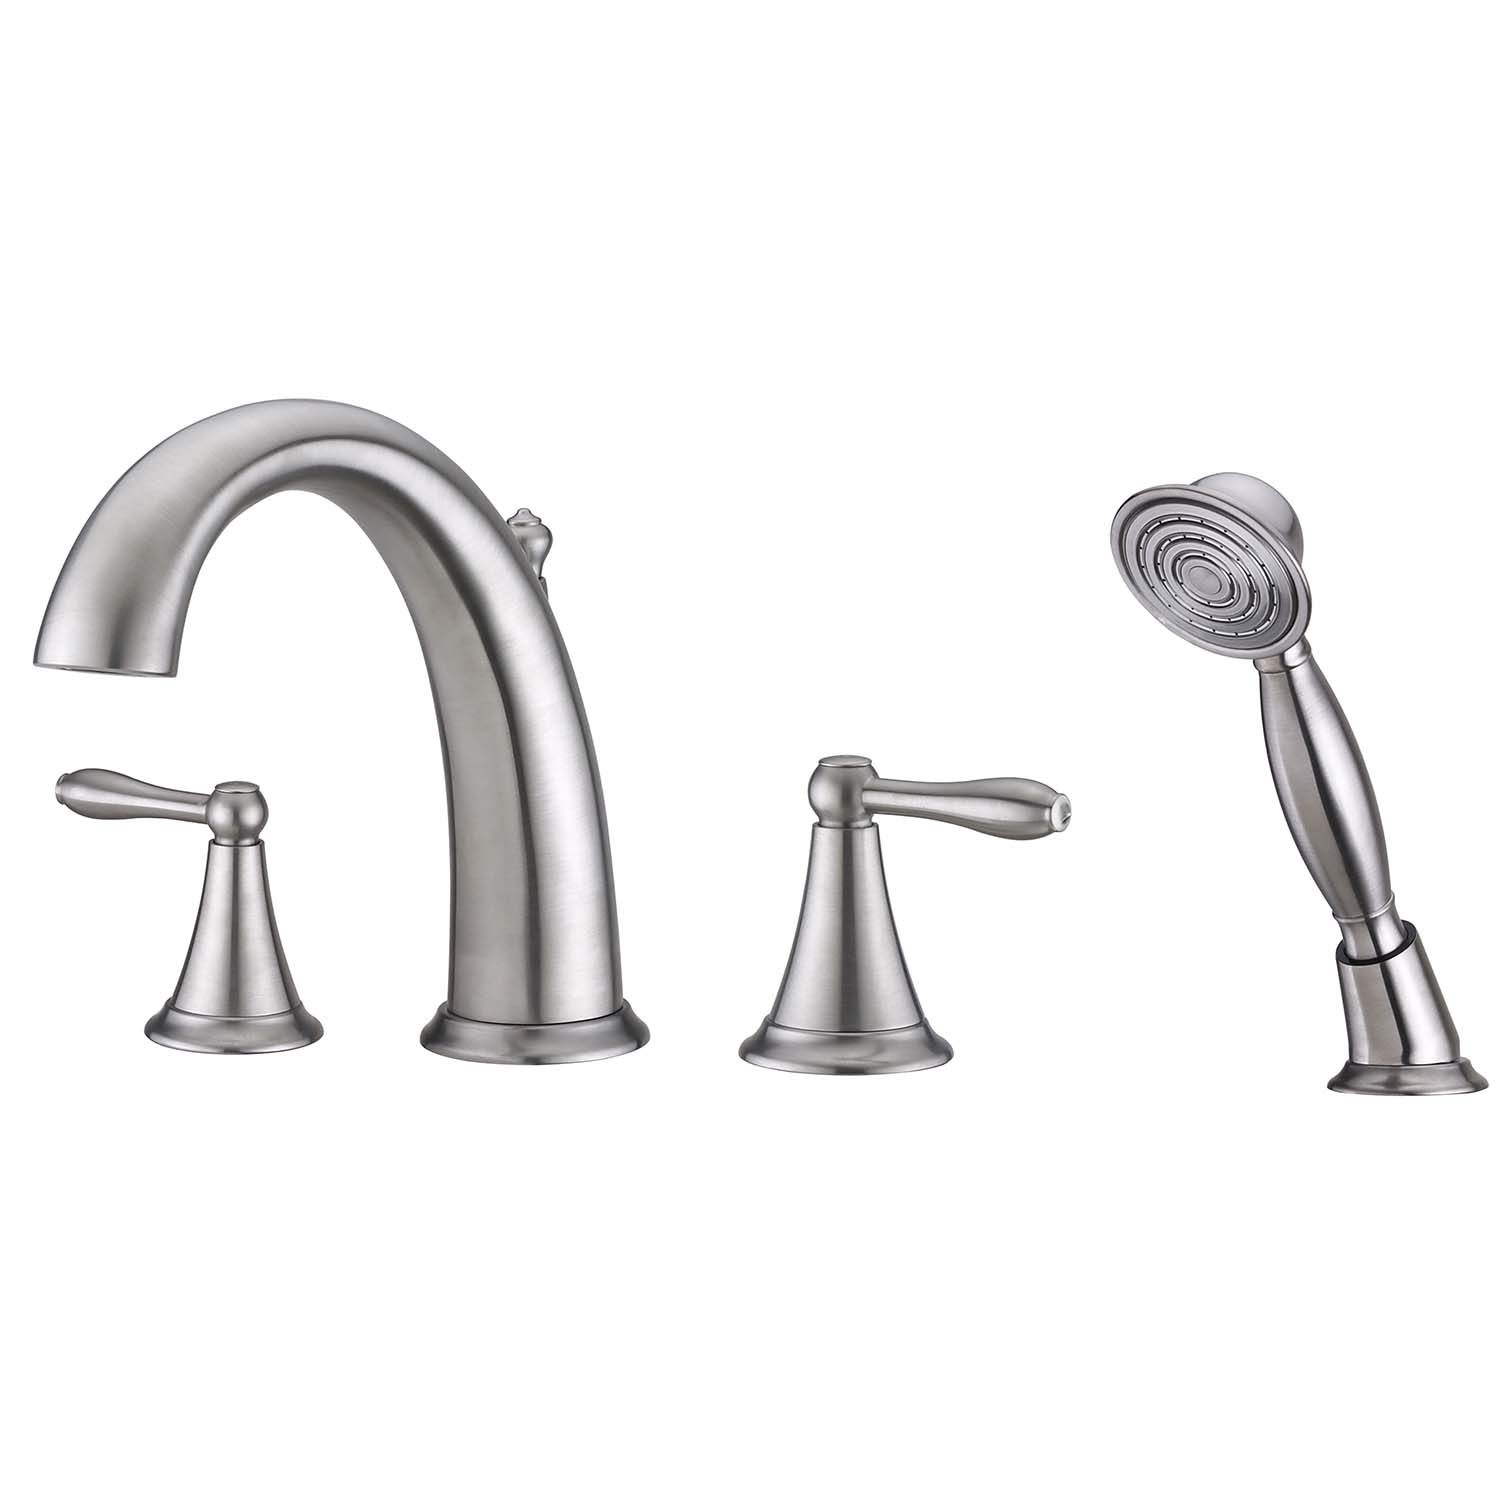 Ultra Faucets Uf65243 Contour Collection Two Handle Roman Tub